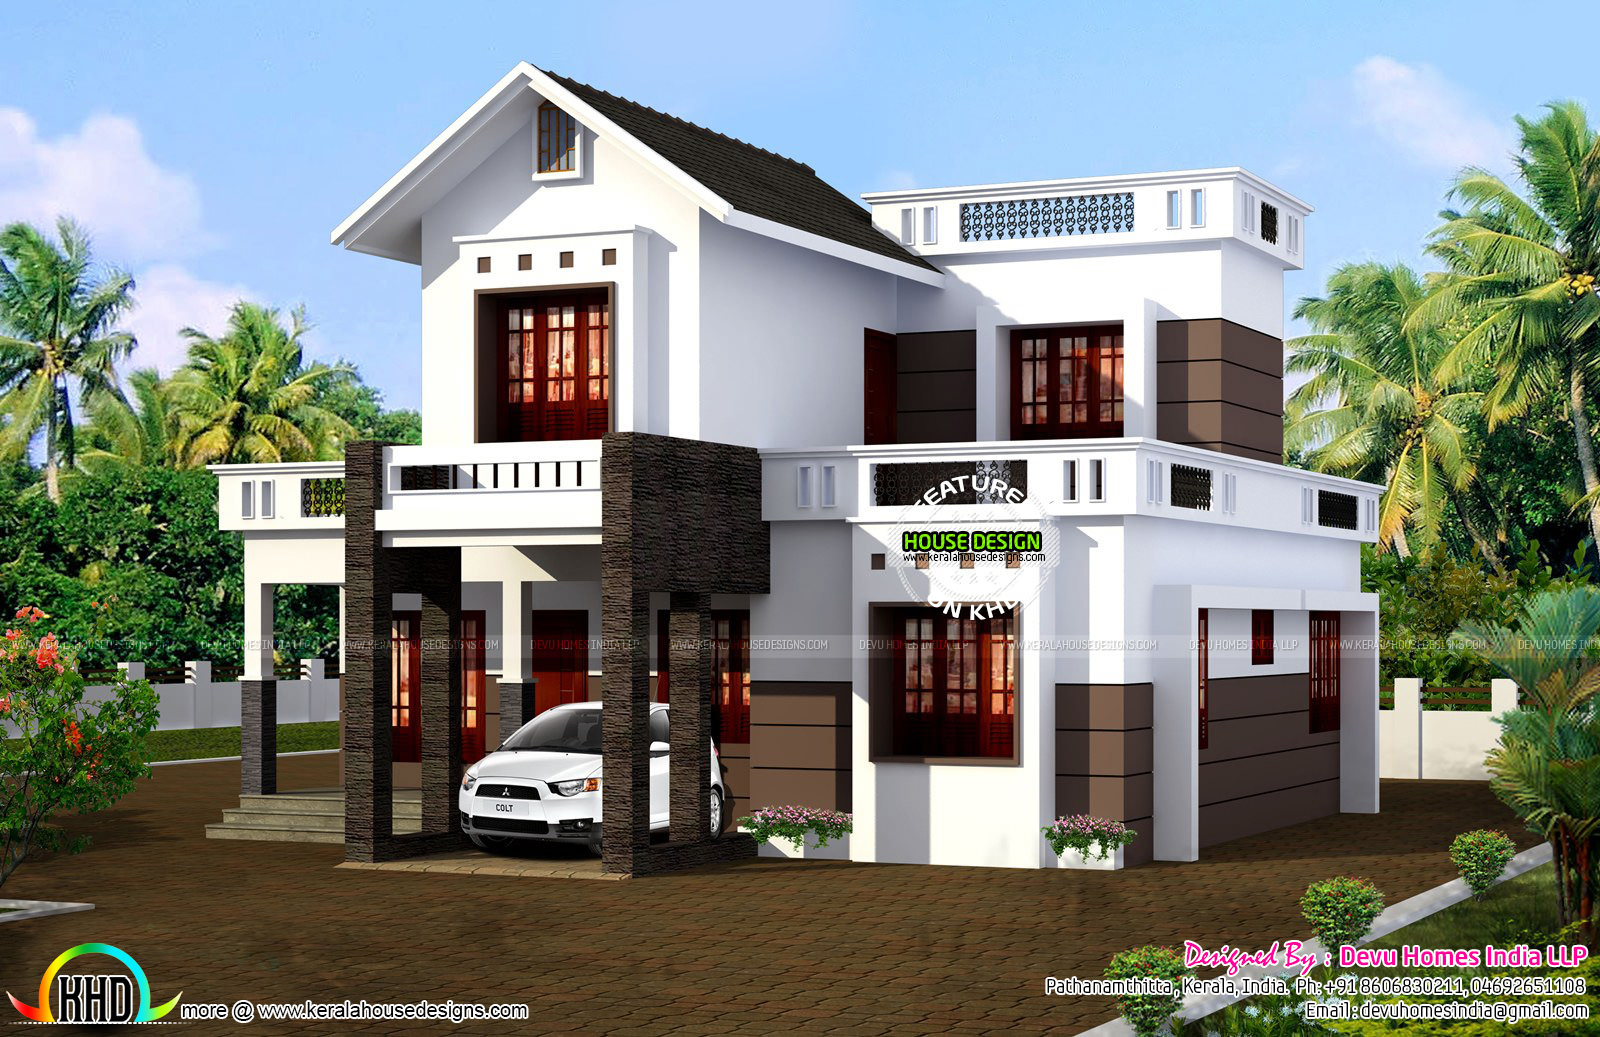 Simple 1524 sq ft house plan kerala home design and for Indian simple house design